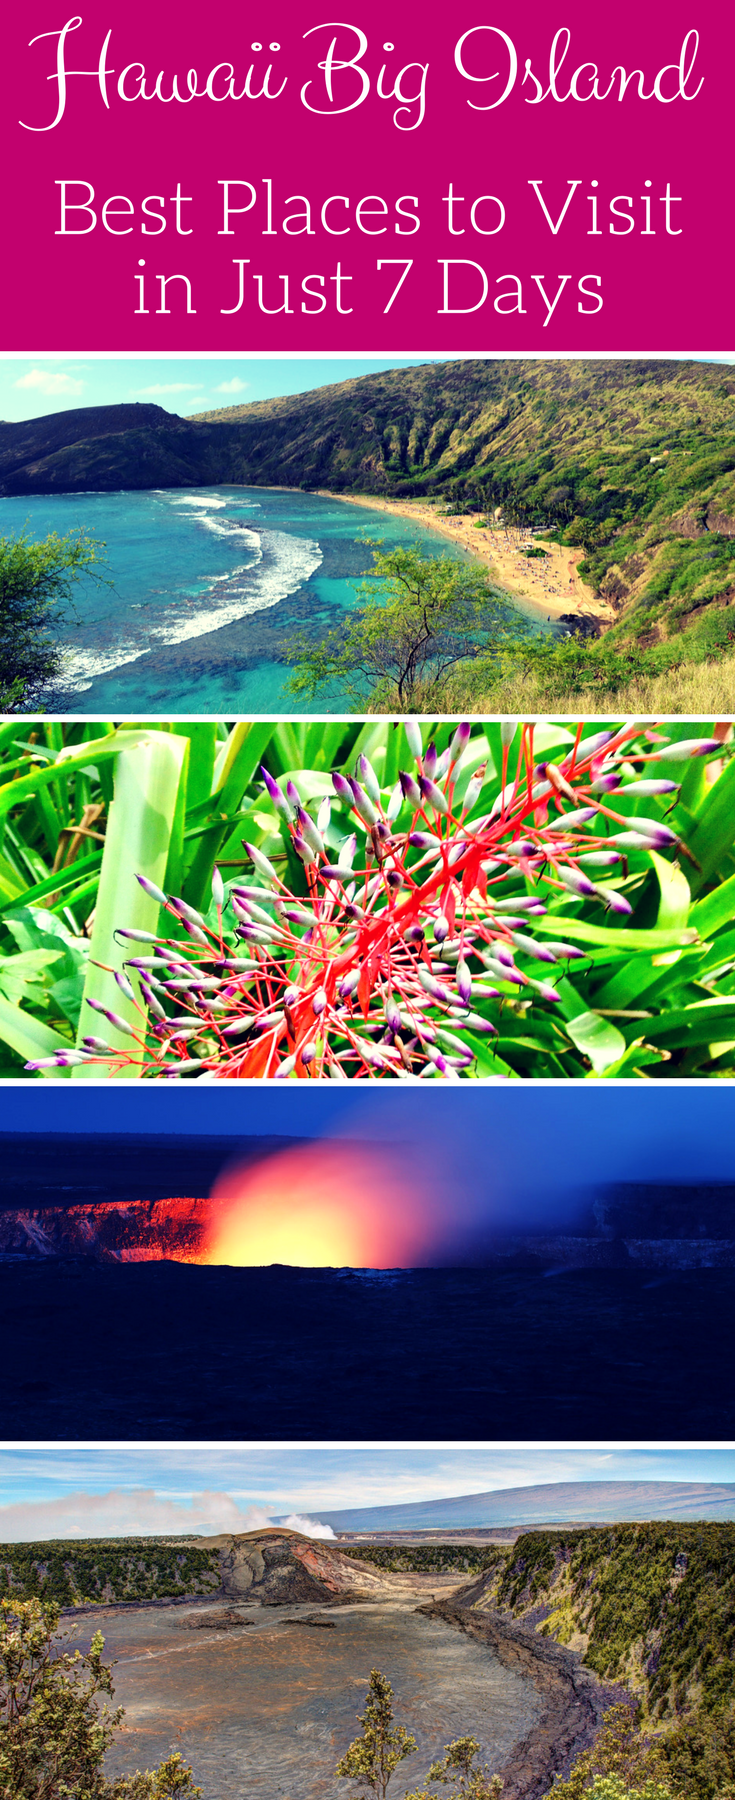 big island hawaii best places to visit in 7 days usa travel rh pinterest com